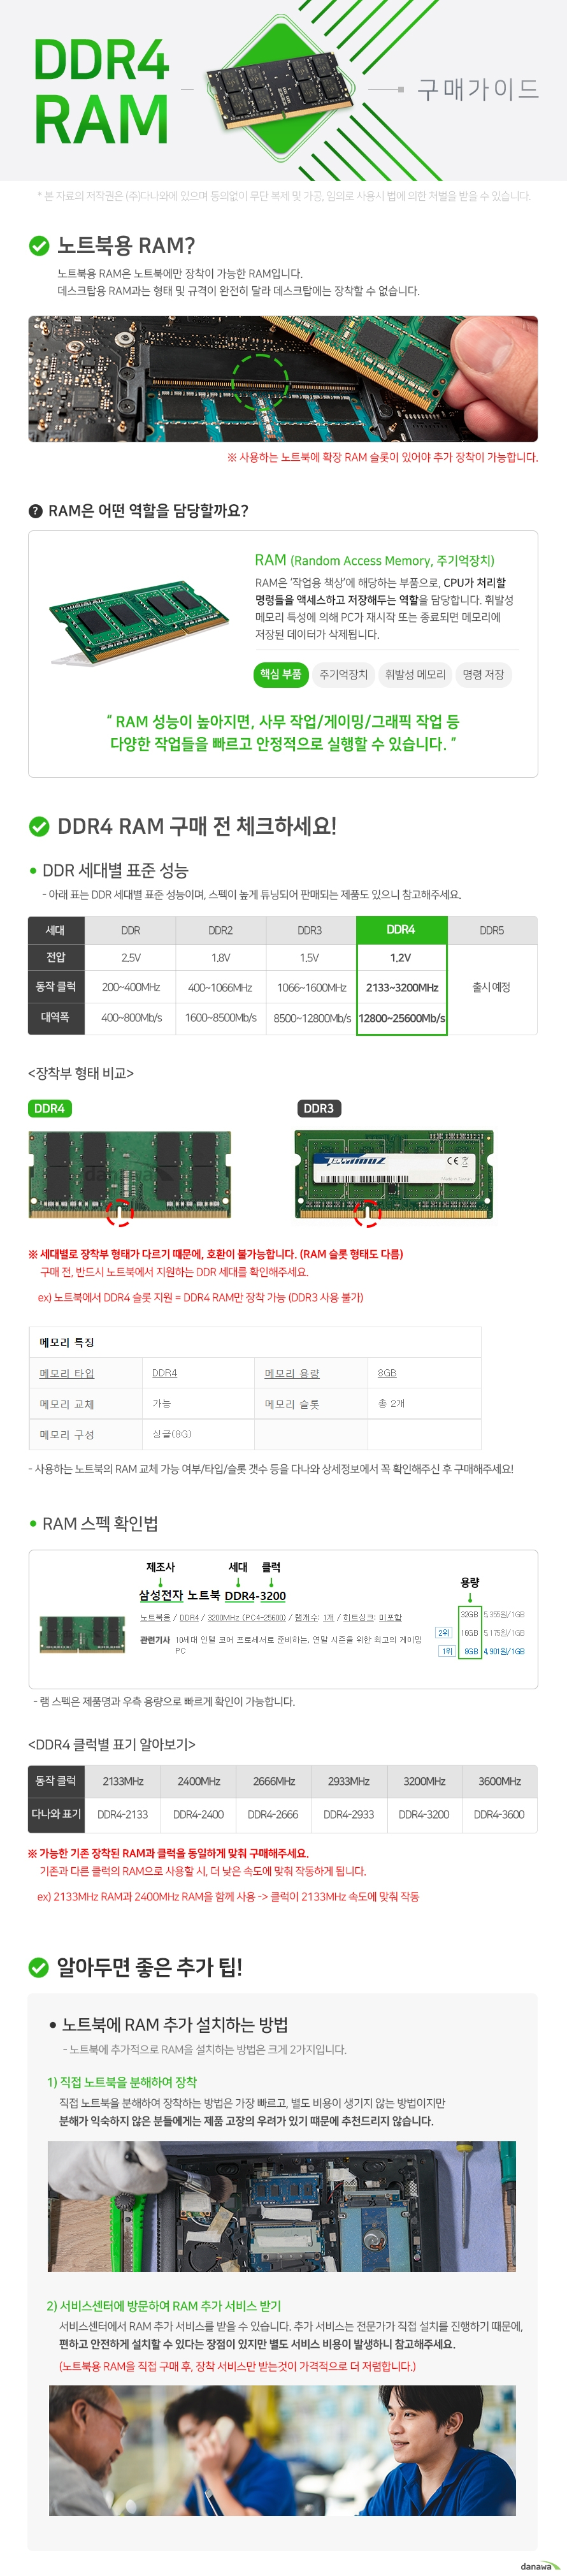 TeamGroup 노트북 DDR4-2666 CL19 ZEUS (8GB)